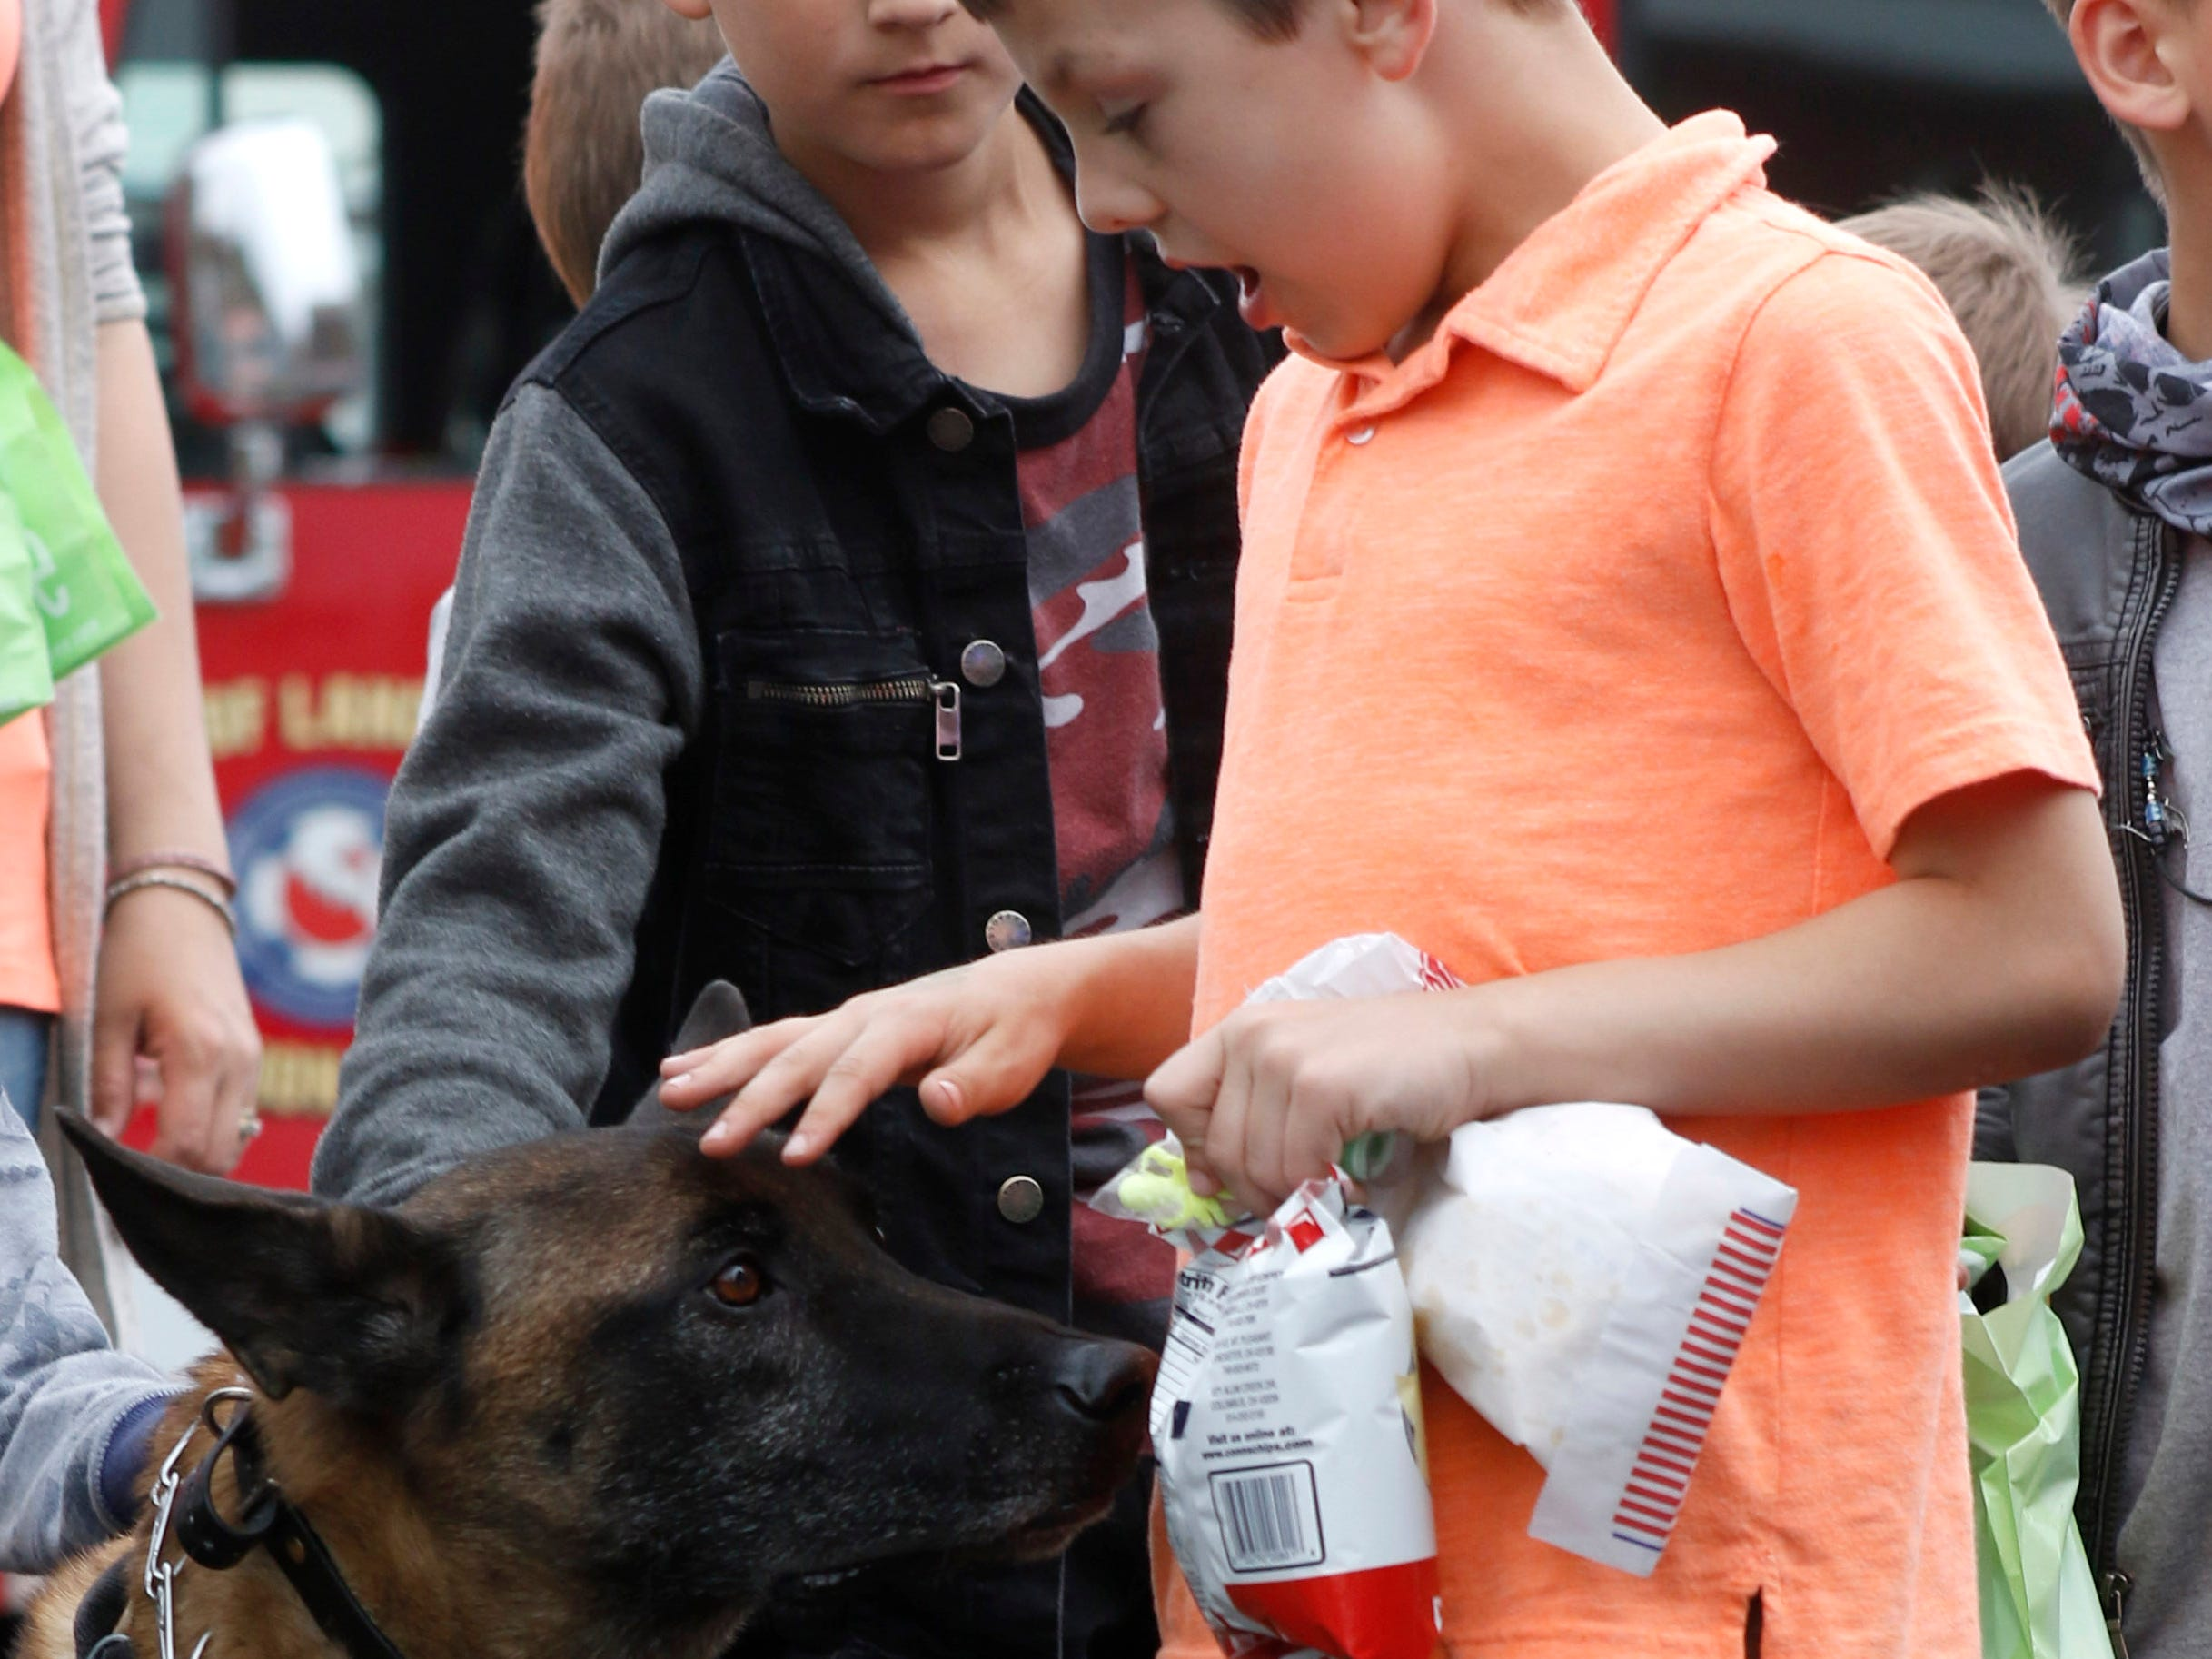 Carter Aneshansley, 7, pets Kahr a Fairfield County Sheriff's Office K-9 as Kahr tries to sniff out the popcorn and potato chips in Aneshansley's hand Thursday evening, April 25, 2019, at the Fairfield County Job and Family Services' annual Circus Night in downtown Lancaster.